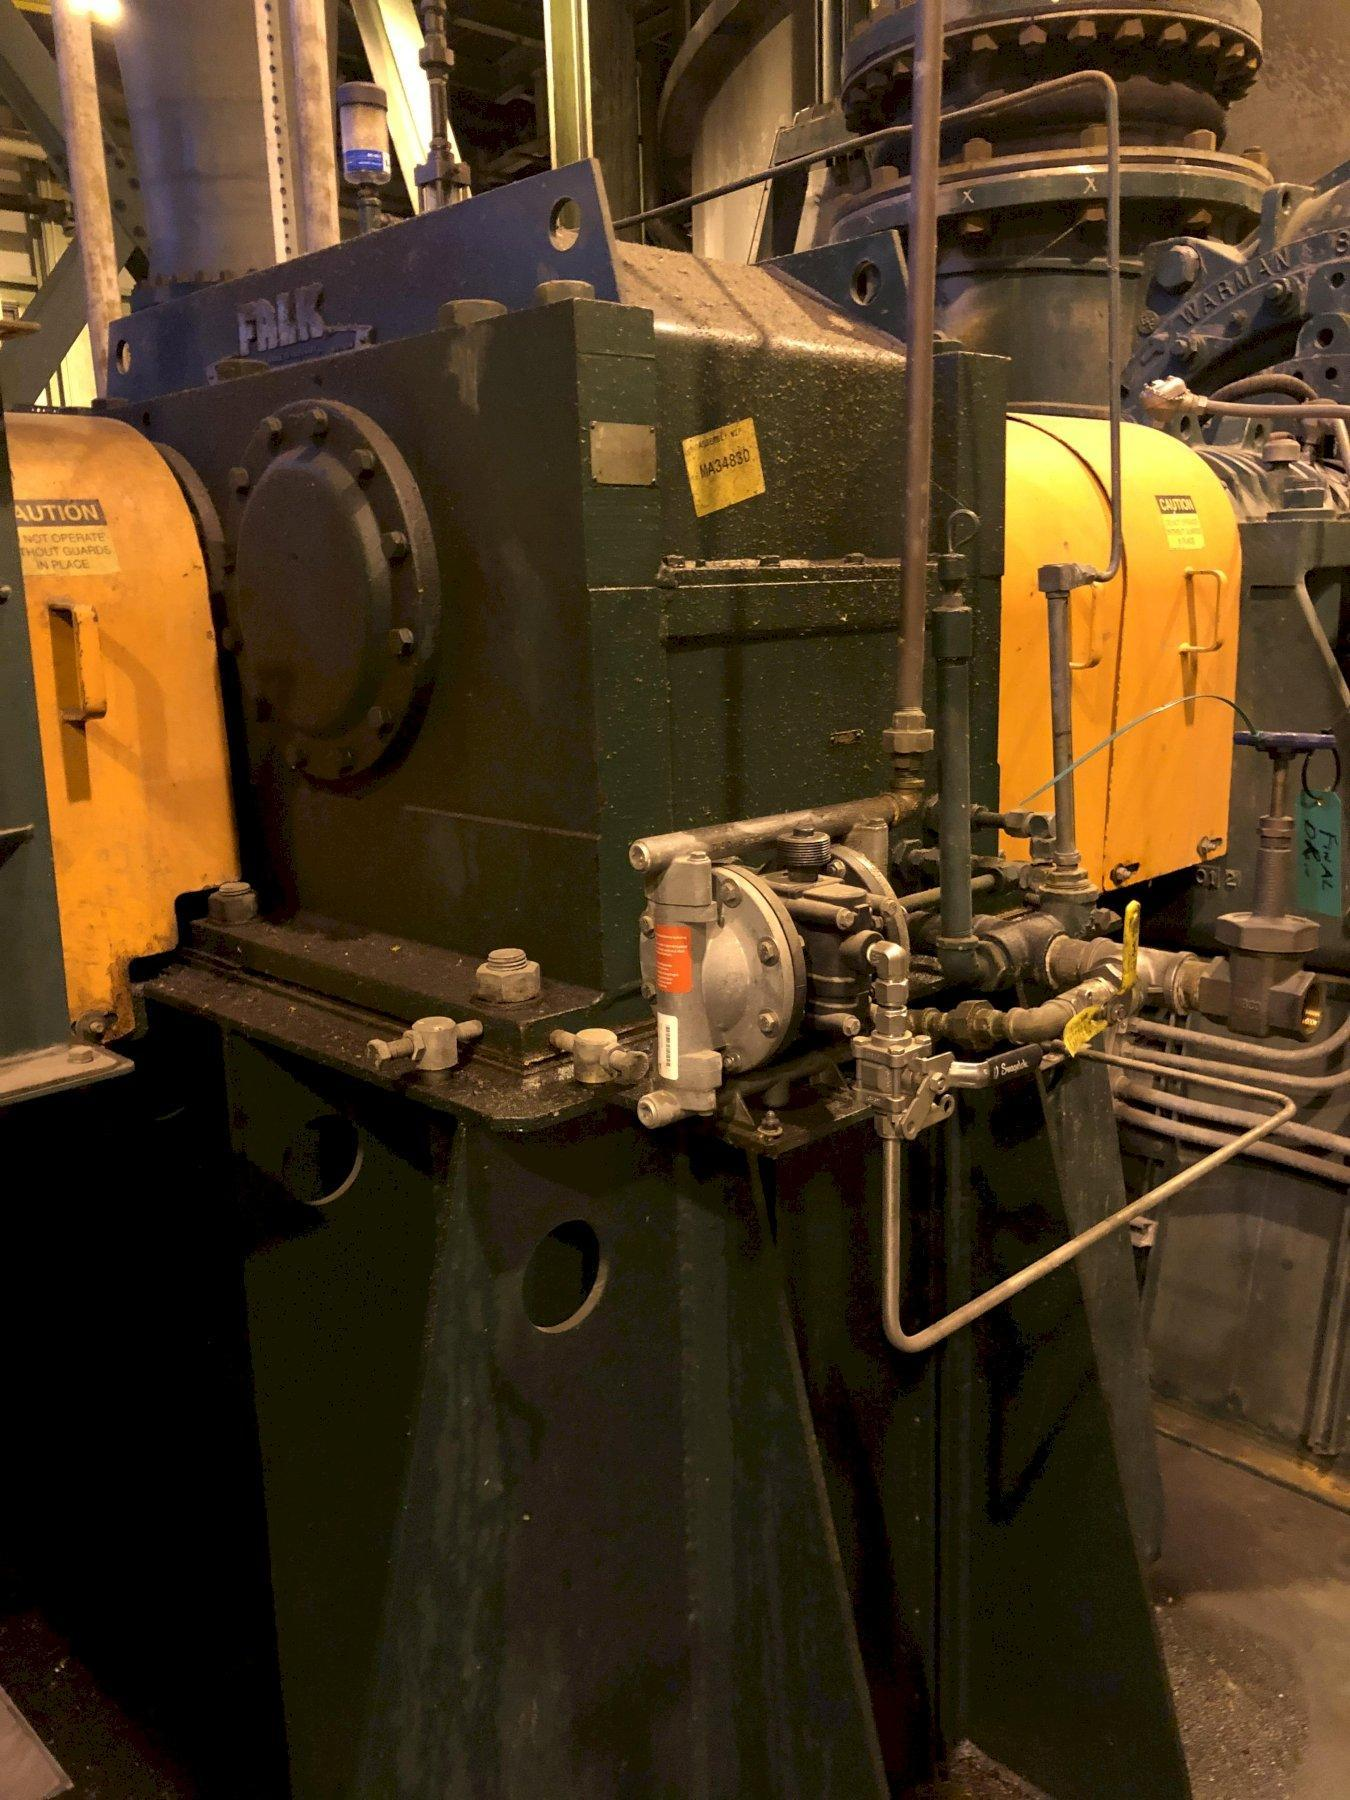 2008 recycle blower system with Siemens 1500 hp motor 6600 volt s/n 079172?020-1, Falk dolrs-gear-ooo2d gearbox, Harman 800gsl blower model 80tycsleaa s/n hds29988m